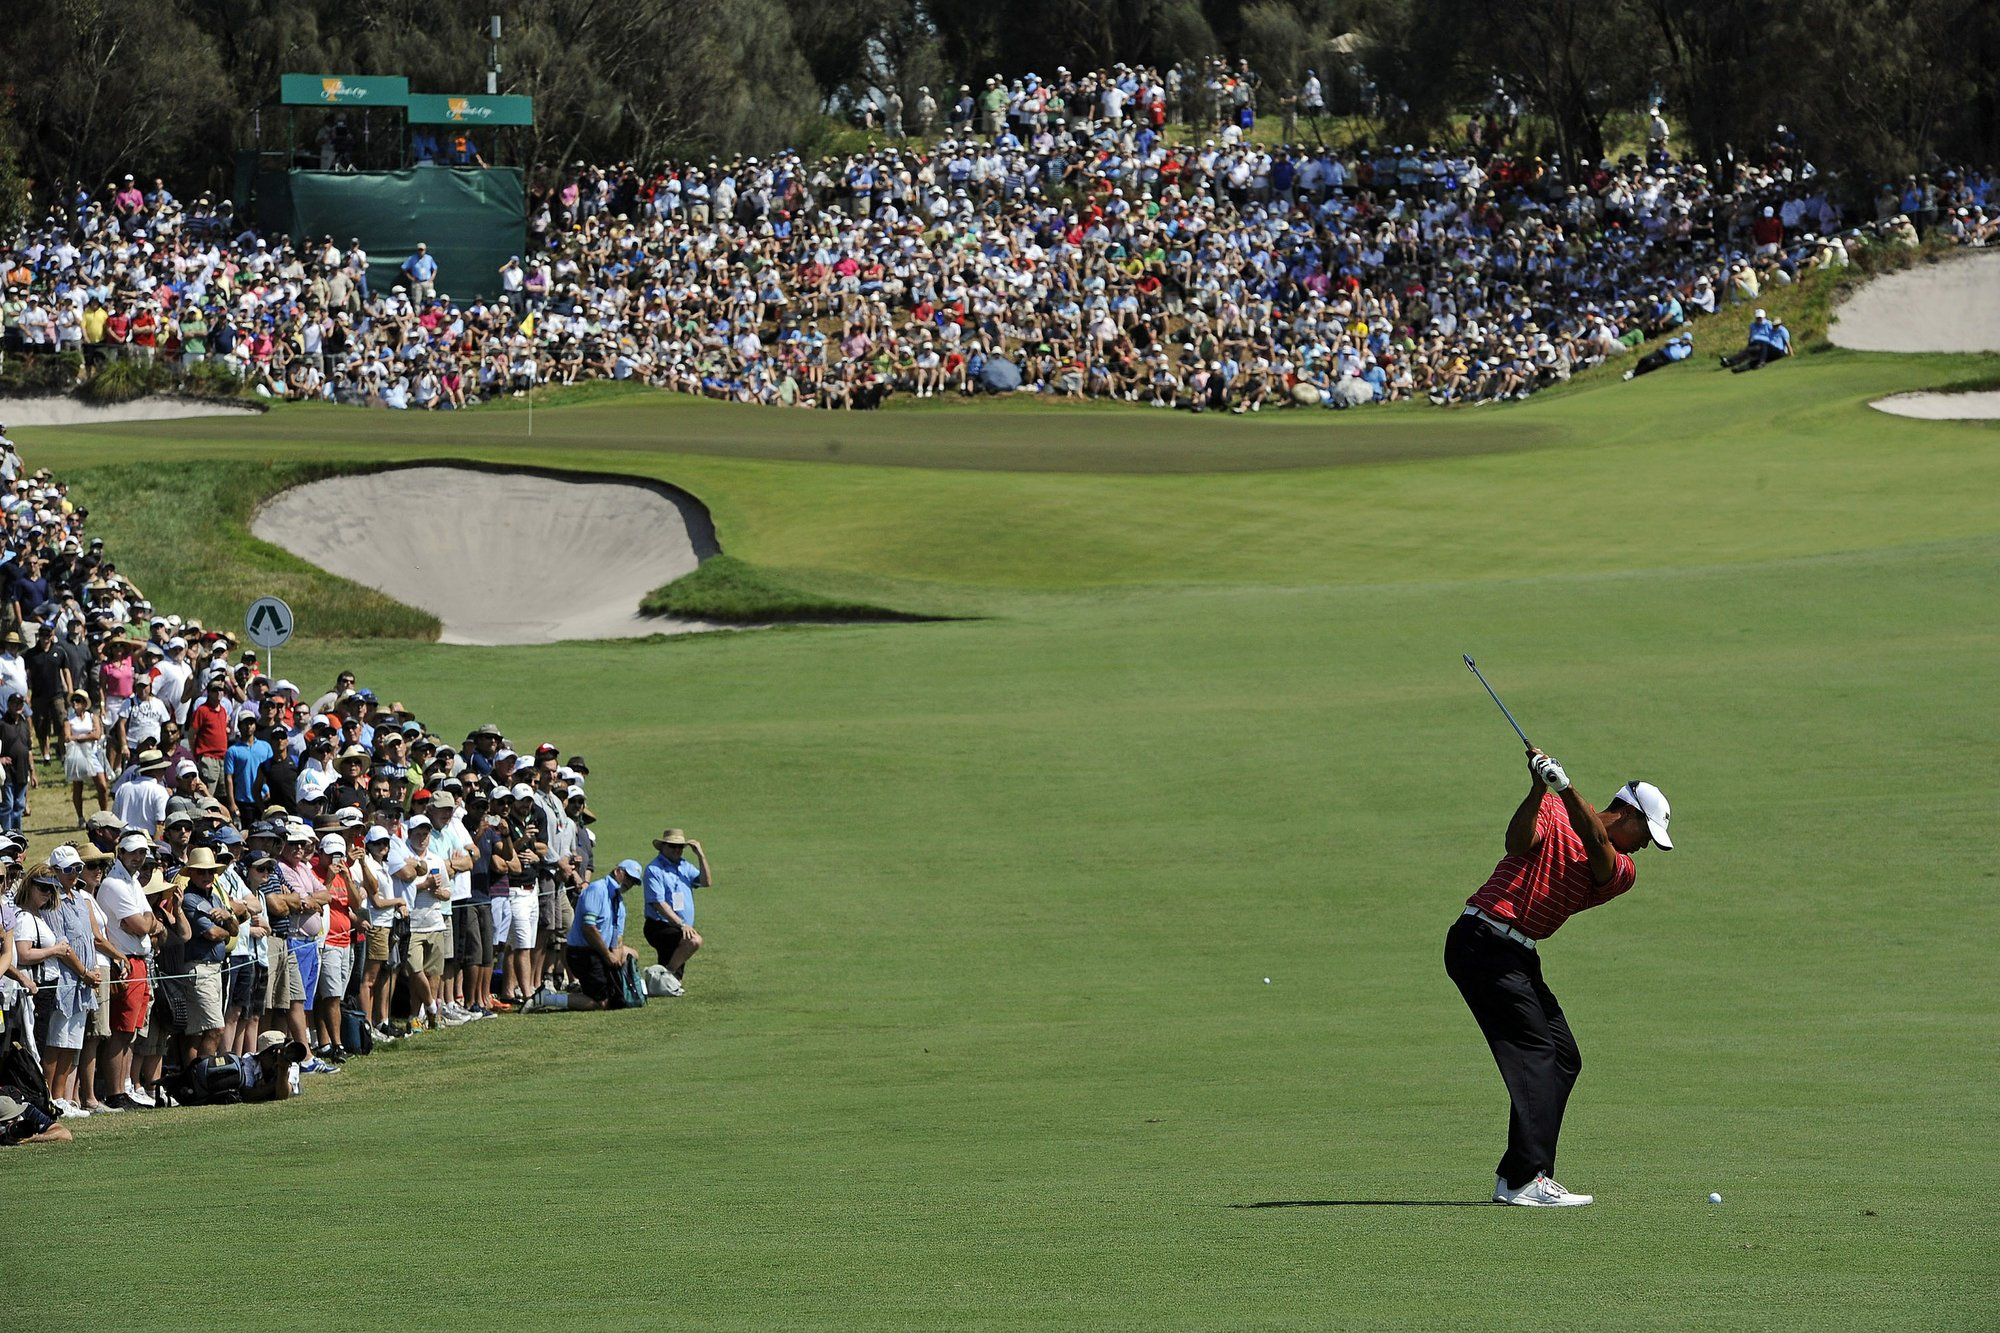 Melbourne's sandbelt to host world's best golfers yet again